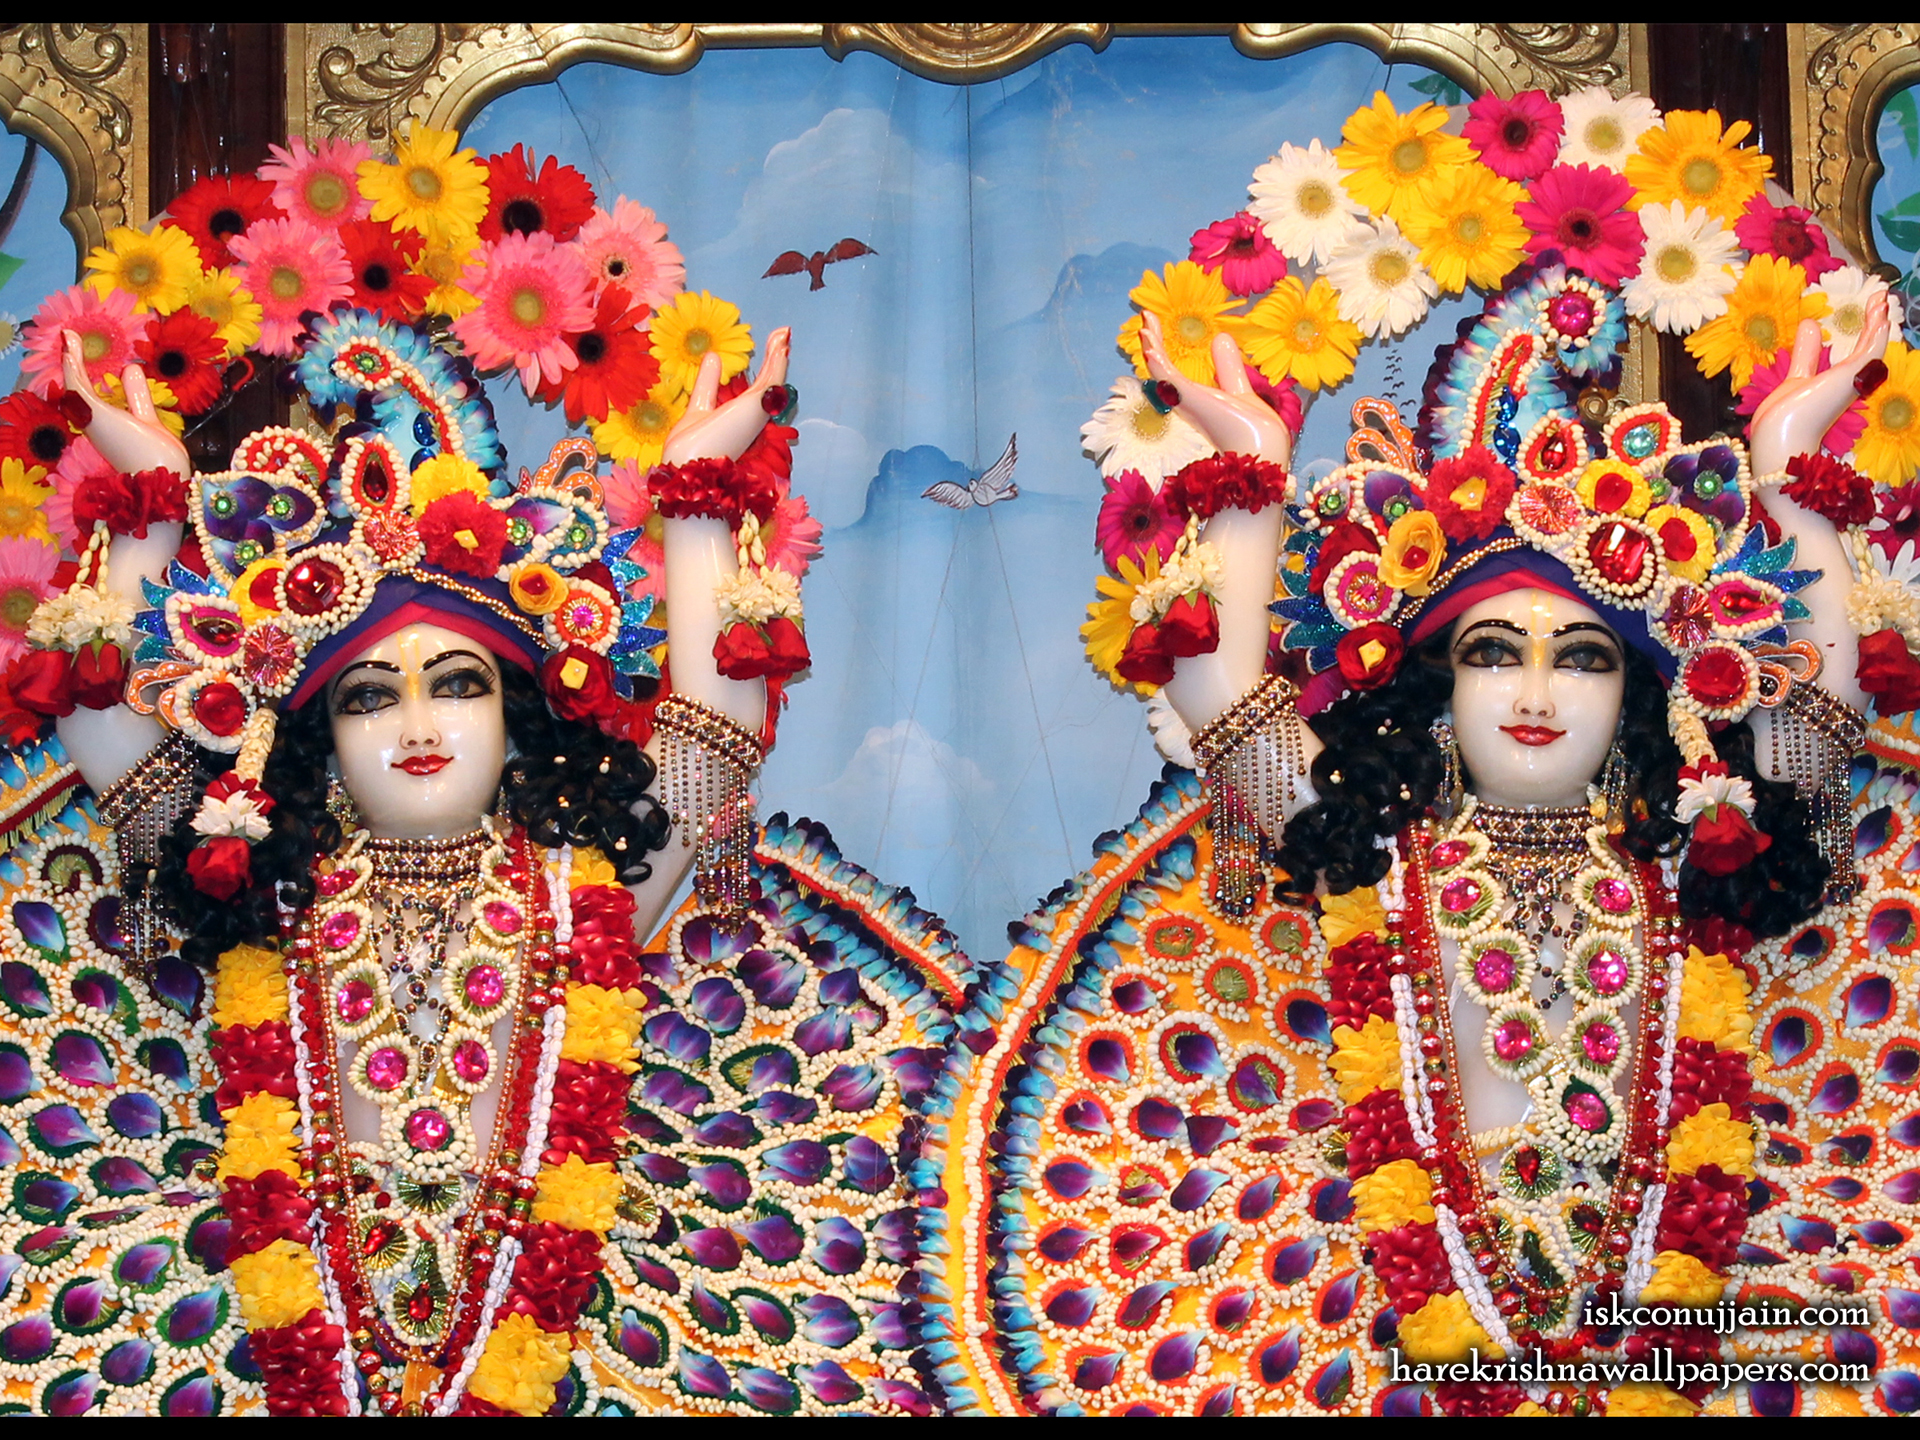 Sri Sri Gaura Nitai Close up Wallpaper (004) Size 1920x1440 Download